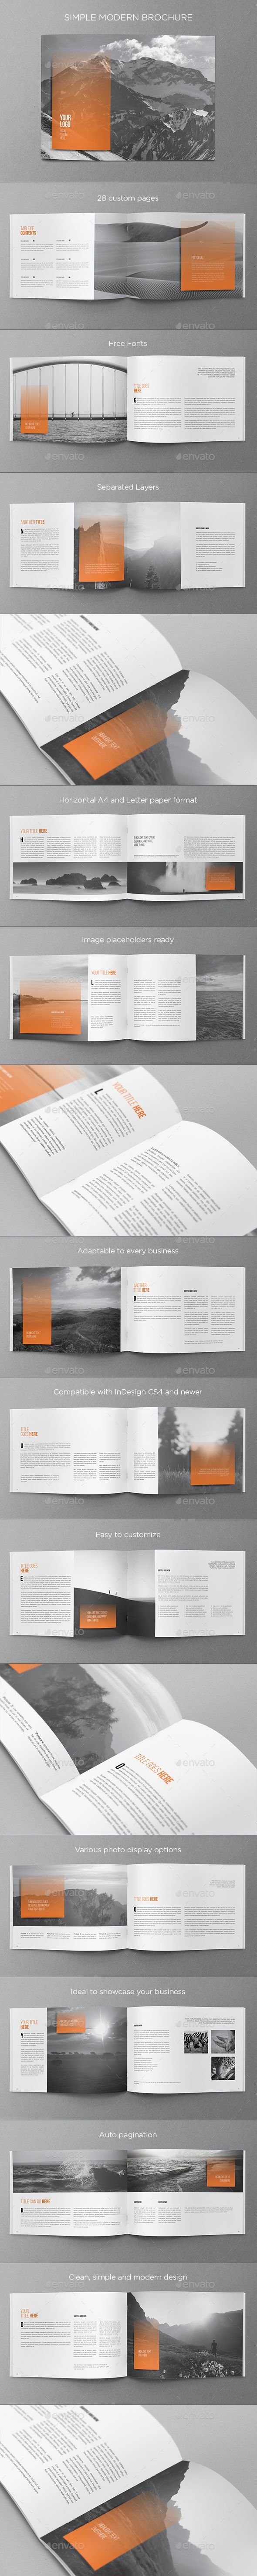 Simple Modern Brochure  #letter #minimal #modern • Available here → http://graphicriver.net/item/simple-modern-brochure/15604676?ref=pxcr